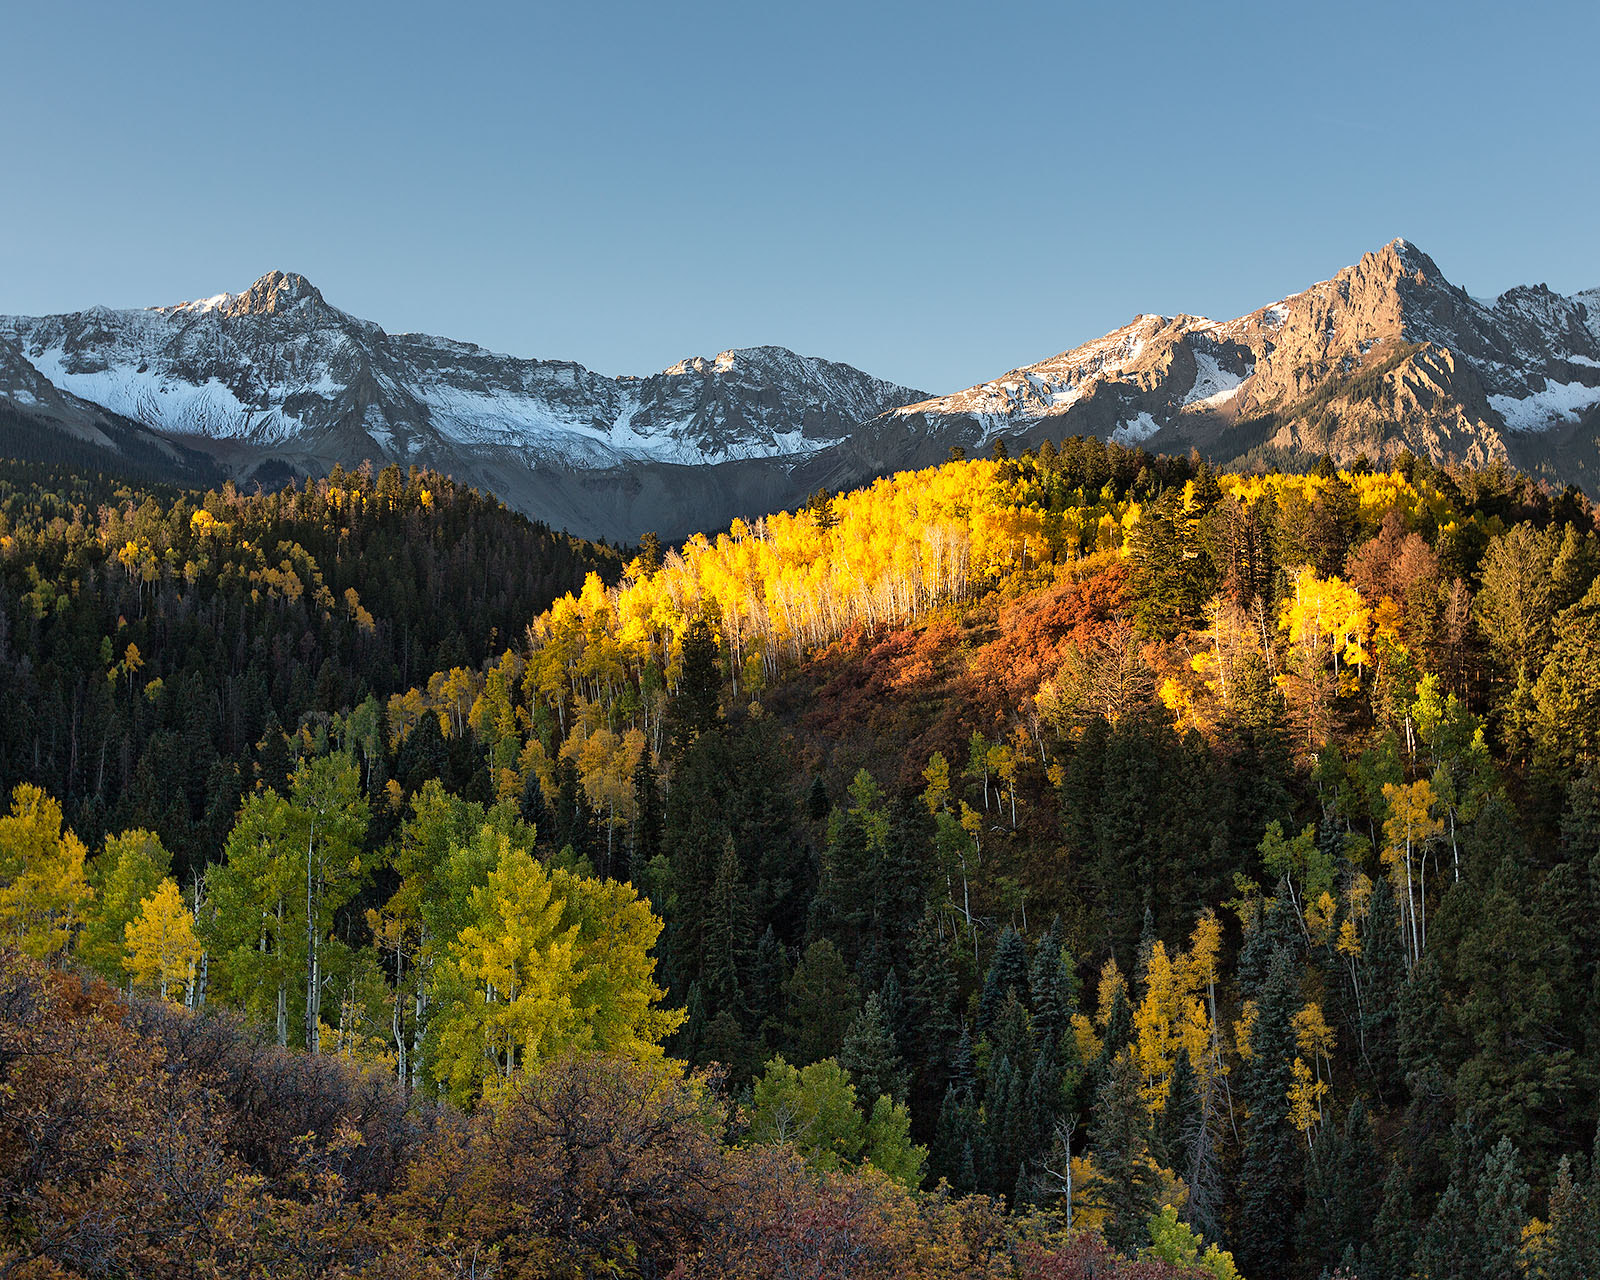 Photograph Autumn Morning by Greg Ness on 500px